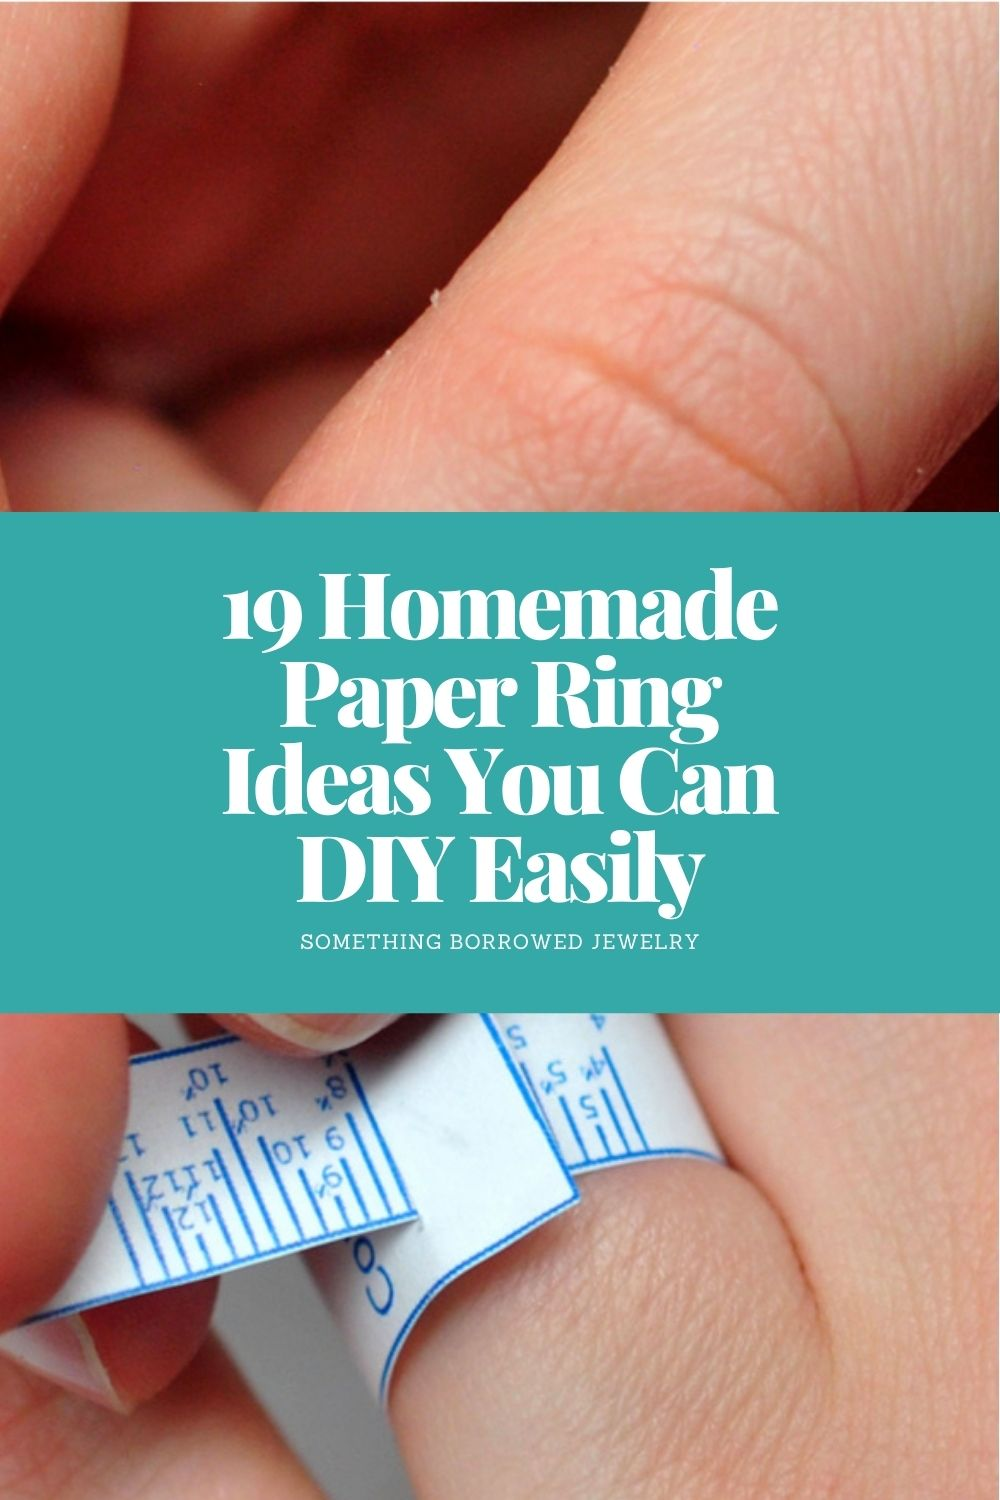 19 Homemade Paper Ring Ideas You Can DIY Easily pin